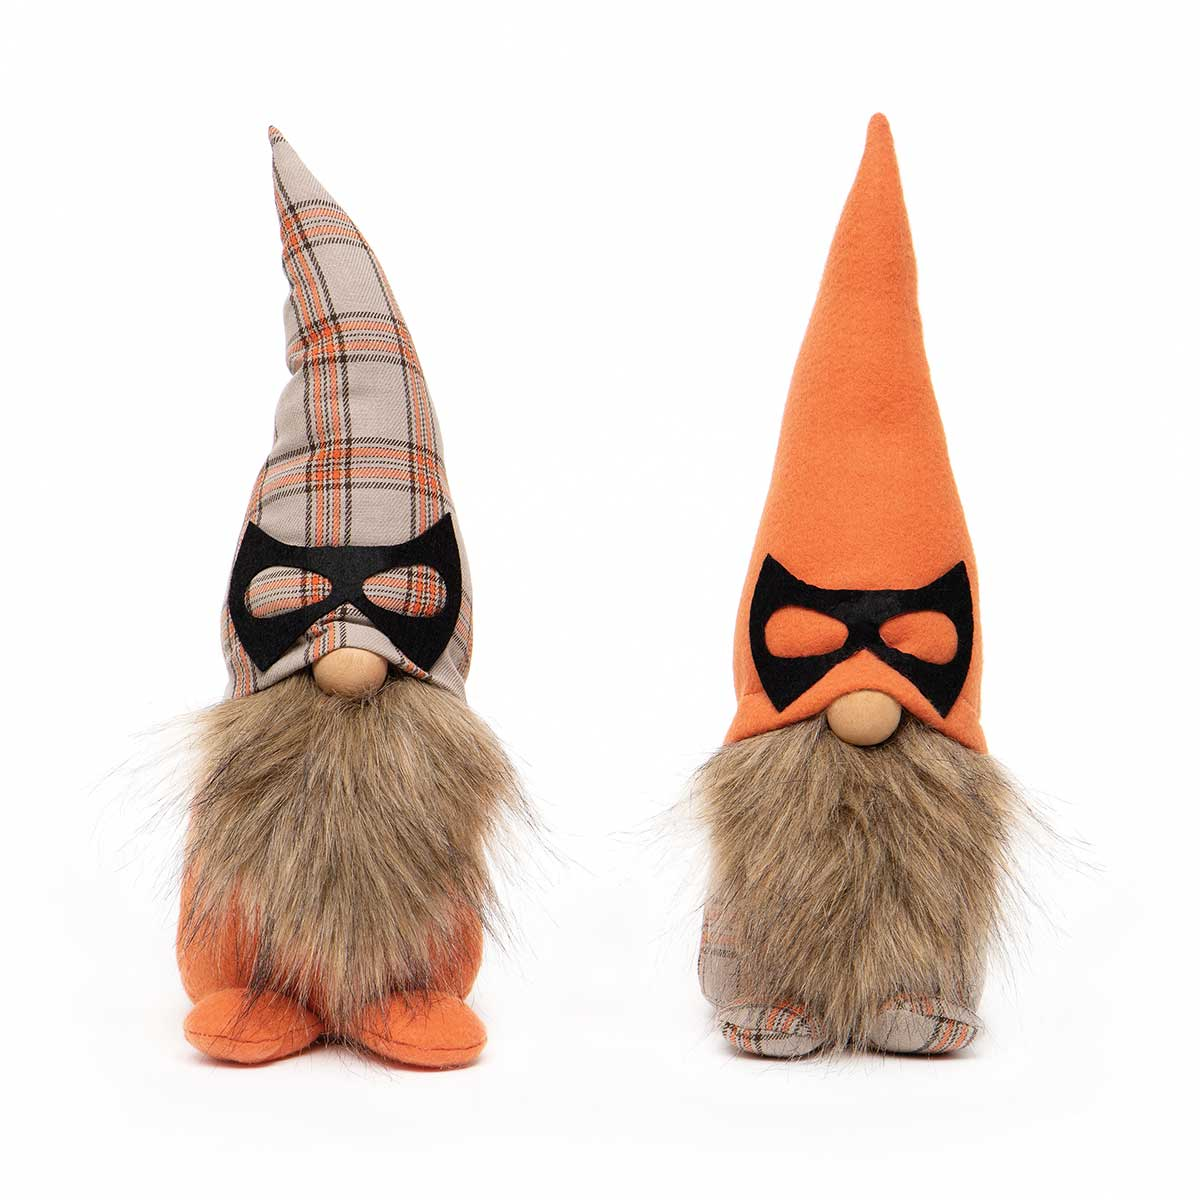 MASKED GNOME WITH WIRED ORANGE/PLAID HAT, WOOD NOSE